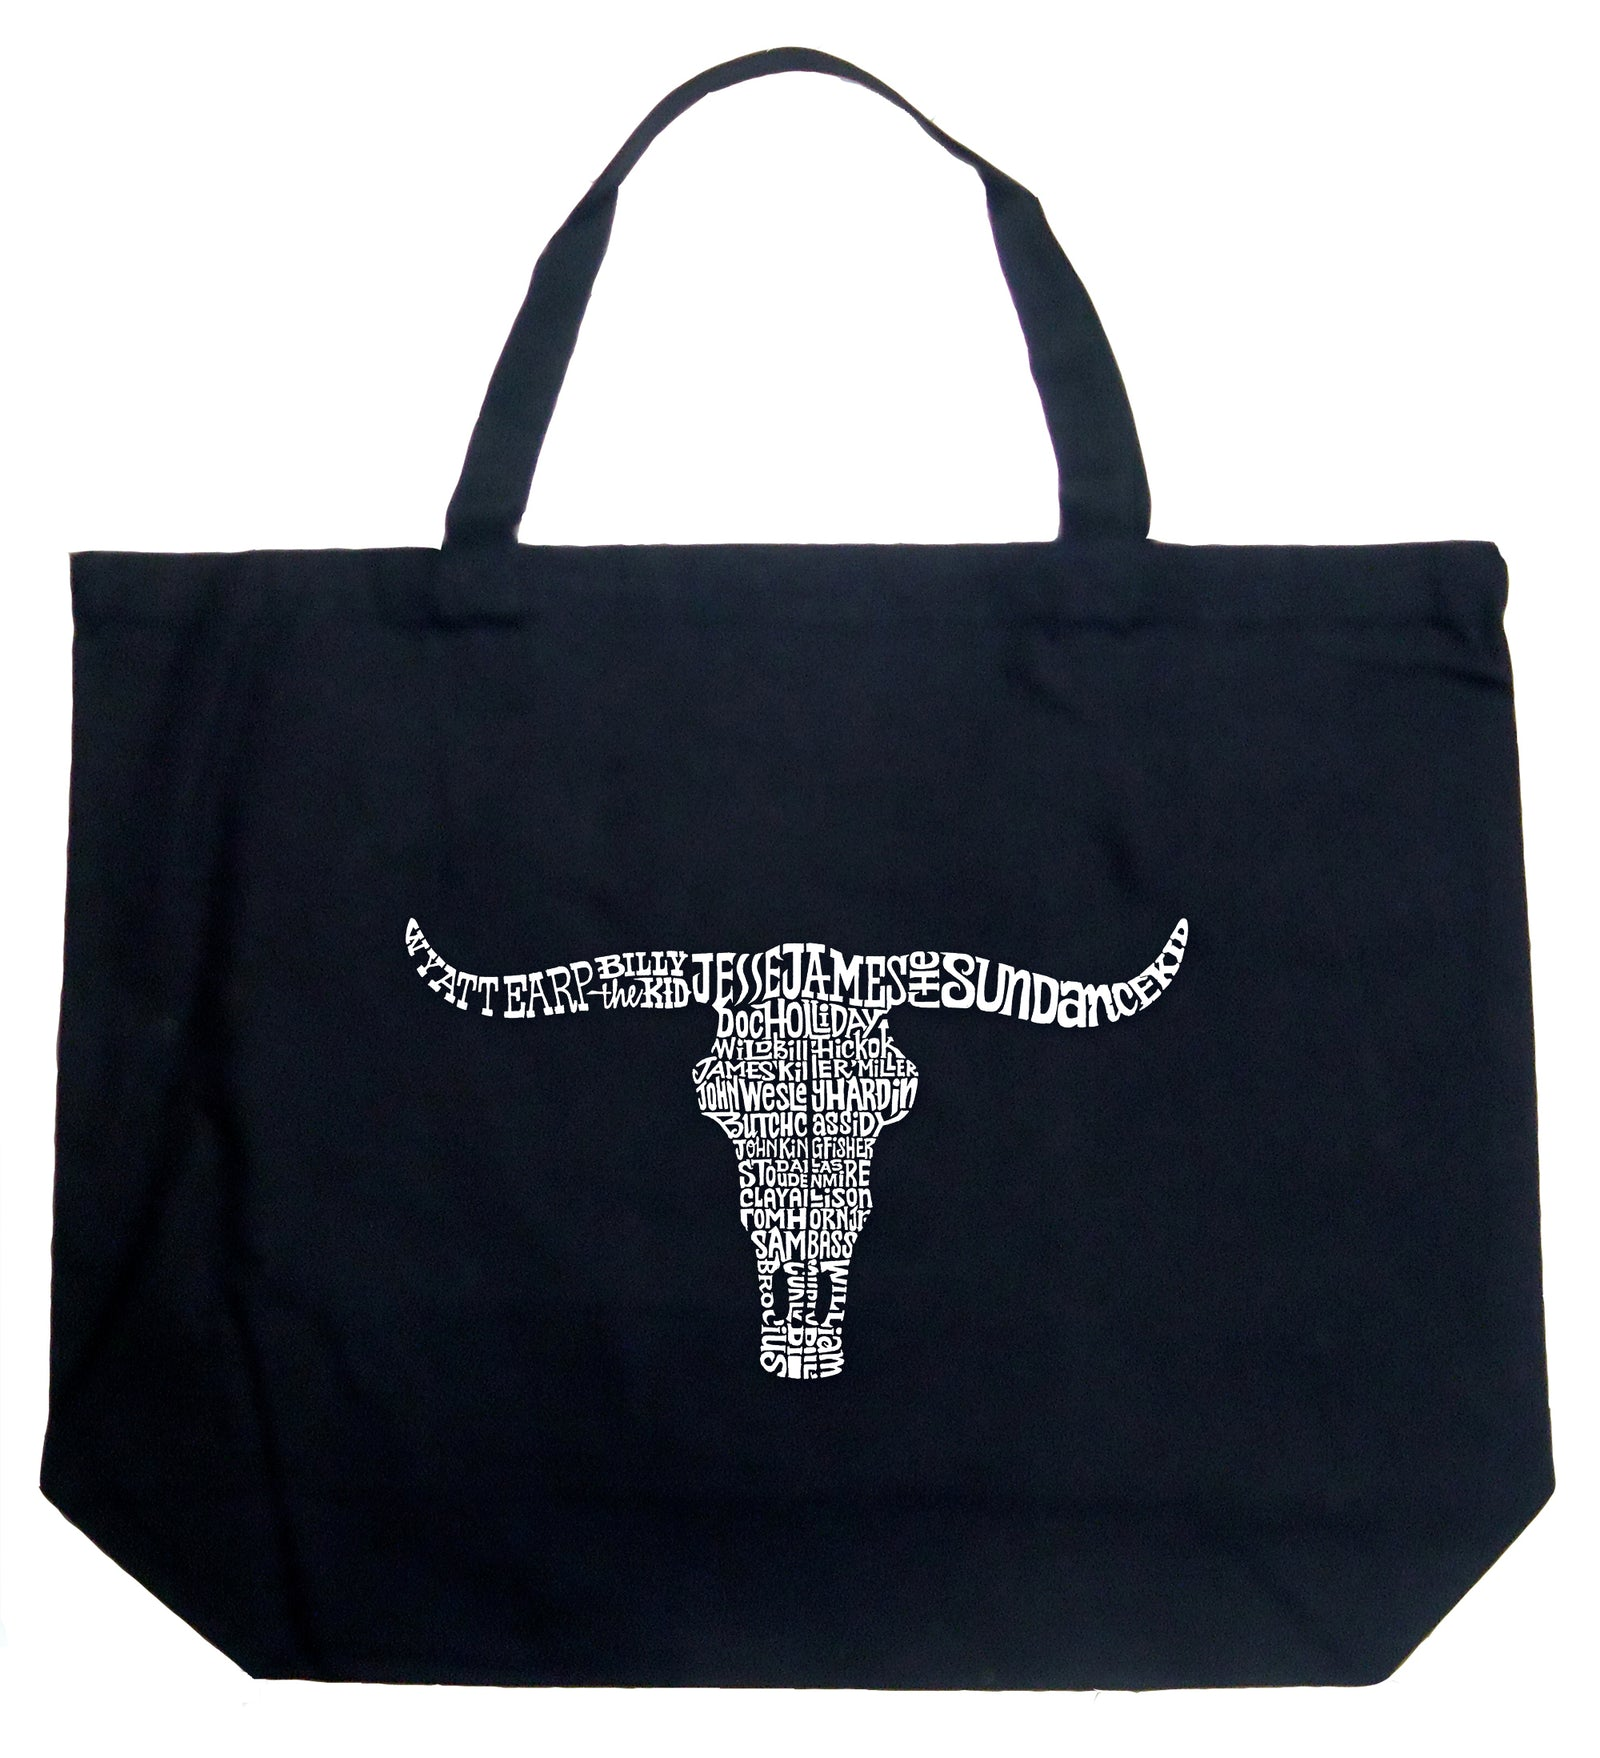 Large Word Art Tote Bag - Names of Legendary Outlaws